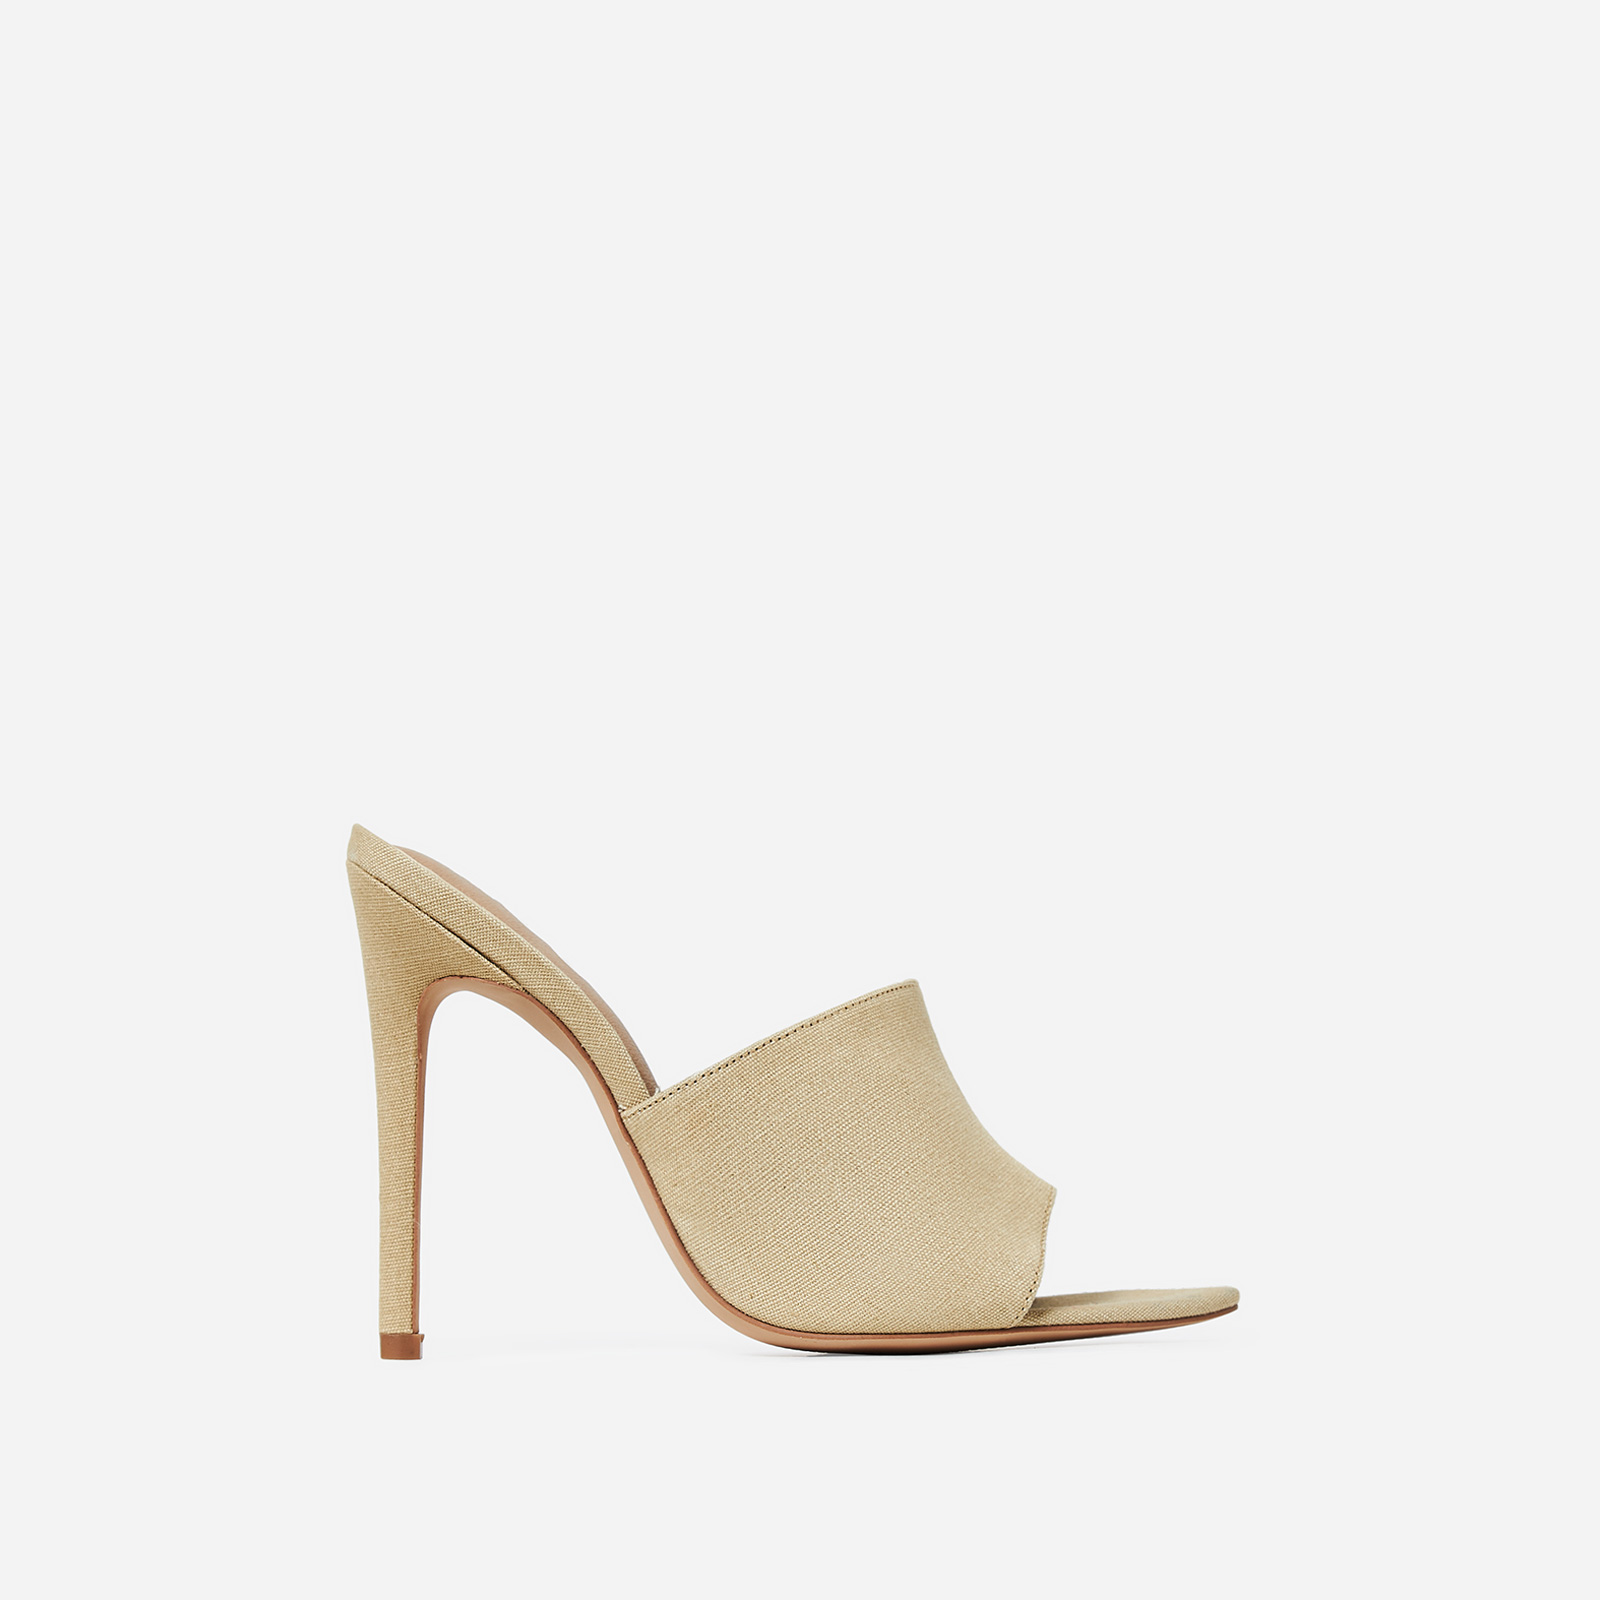 Briana Peep Toe Mule In Nude Canvas